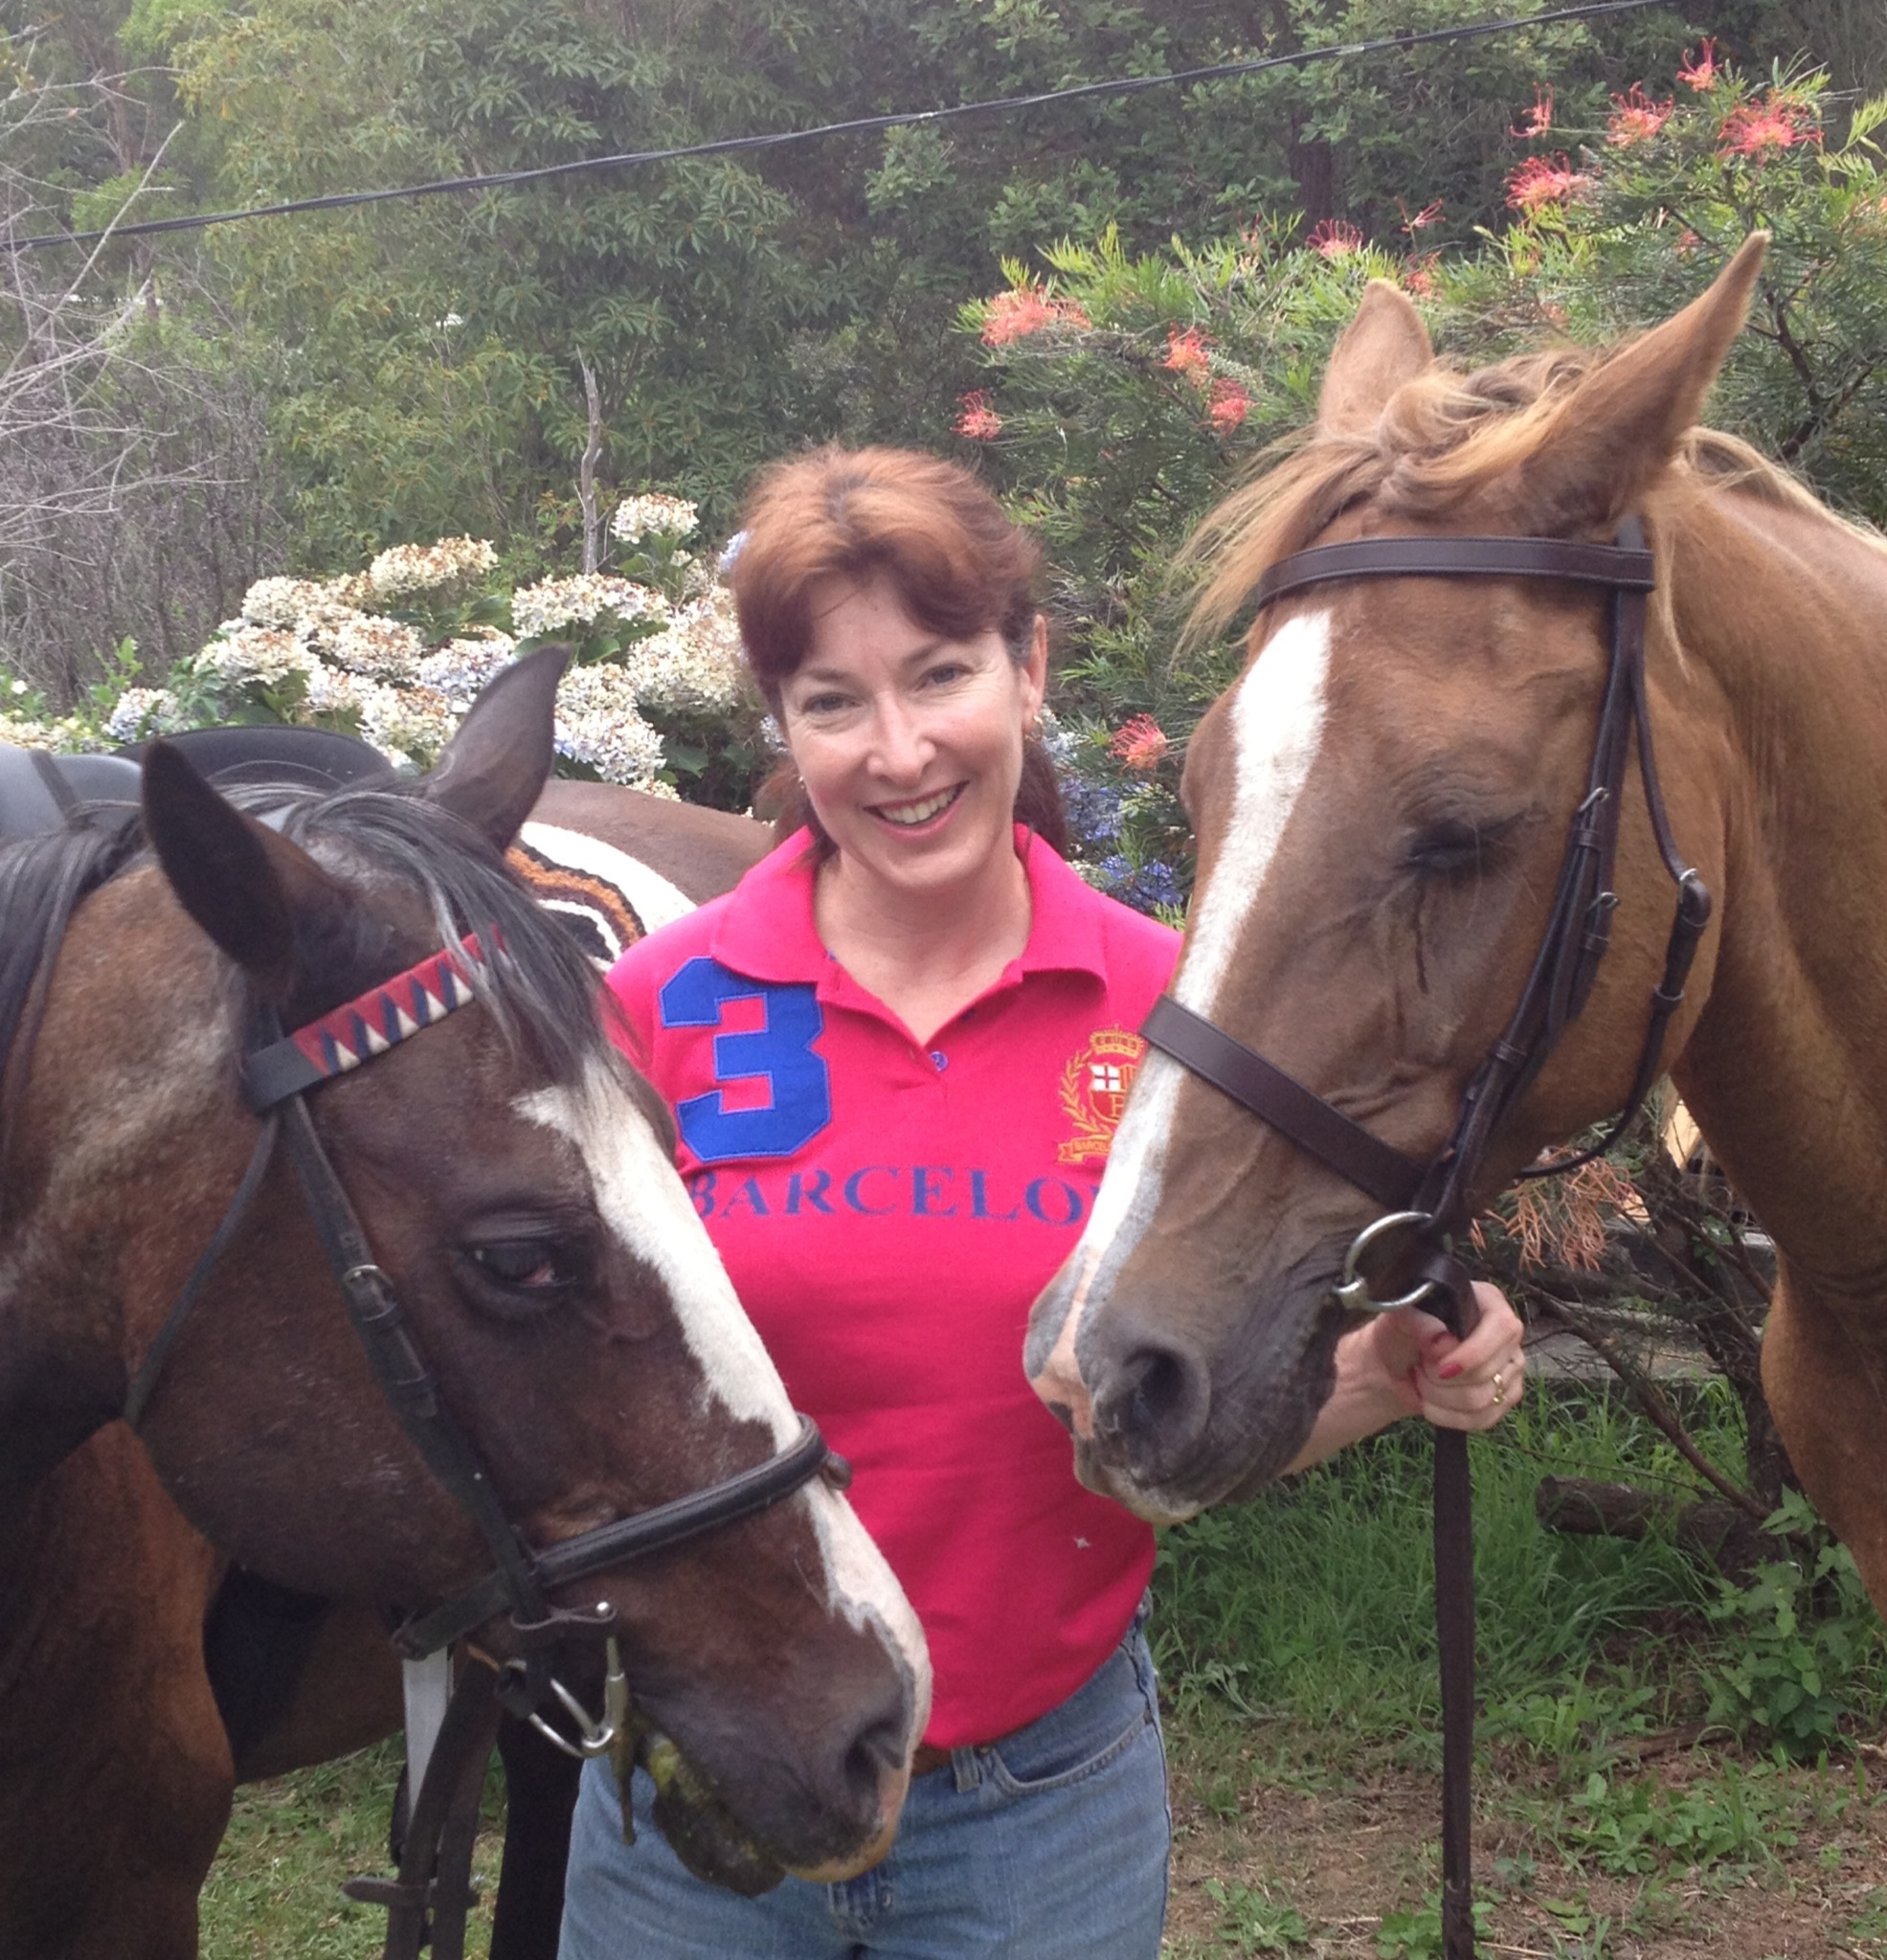 With our horses - Alyssa